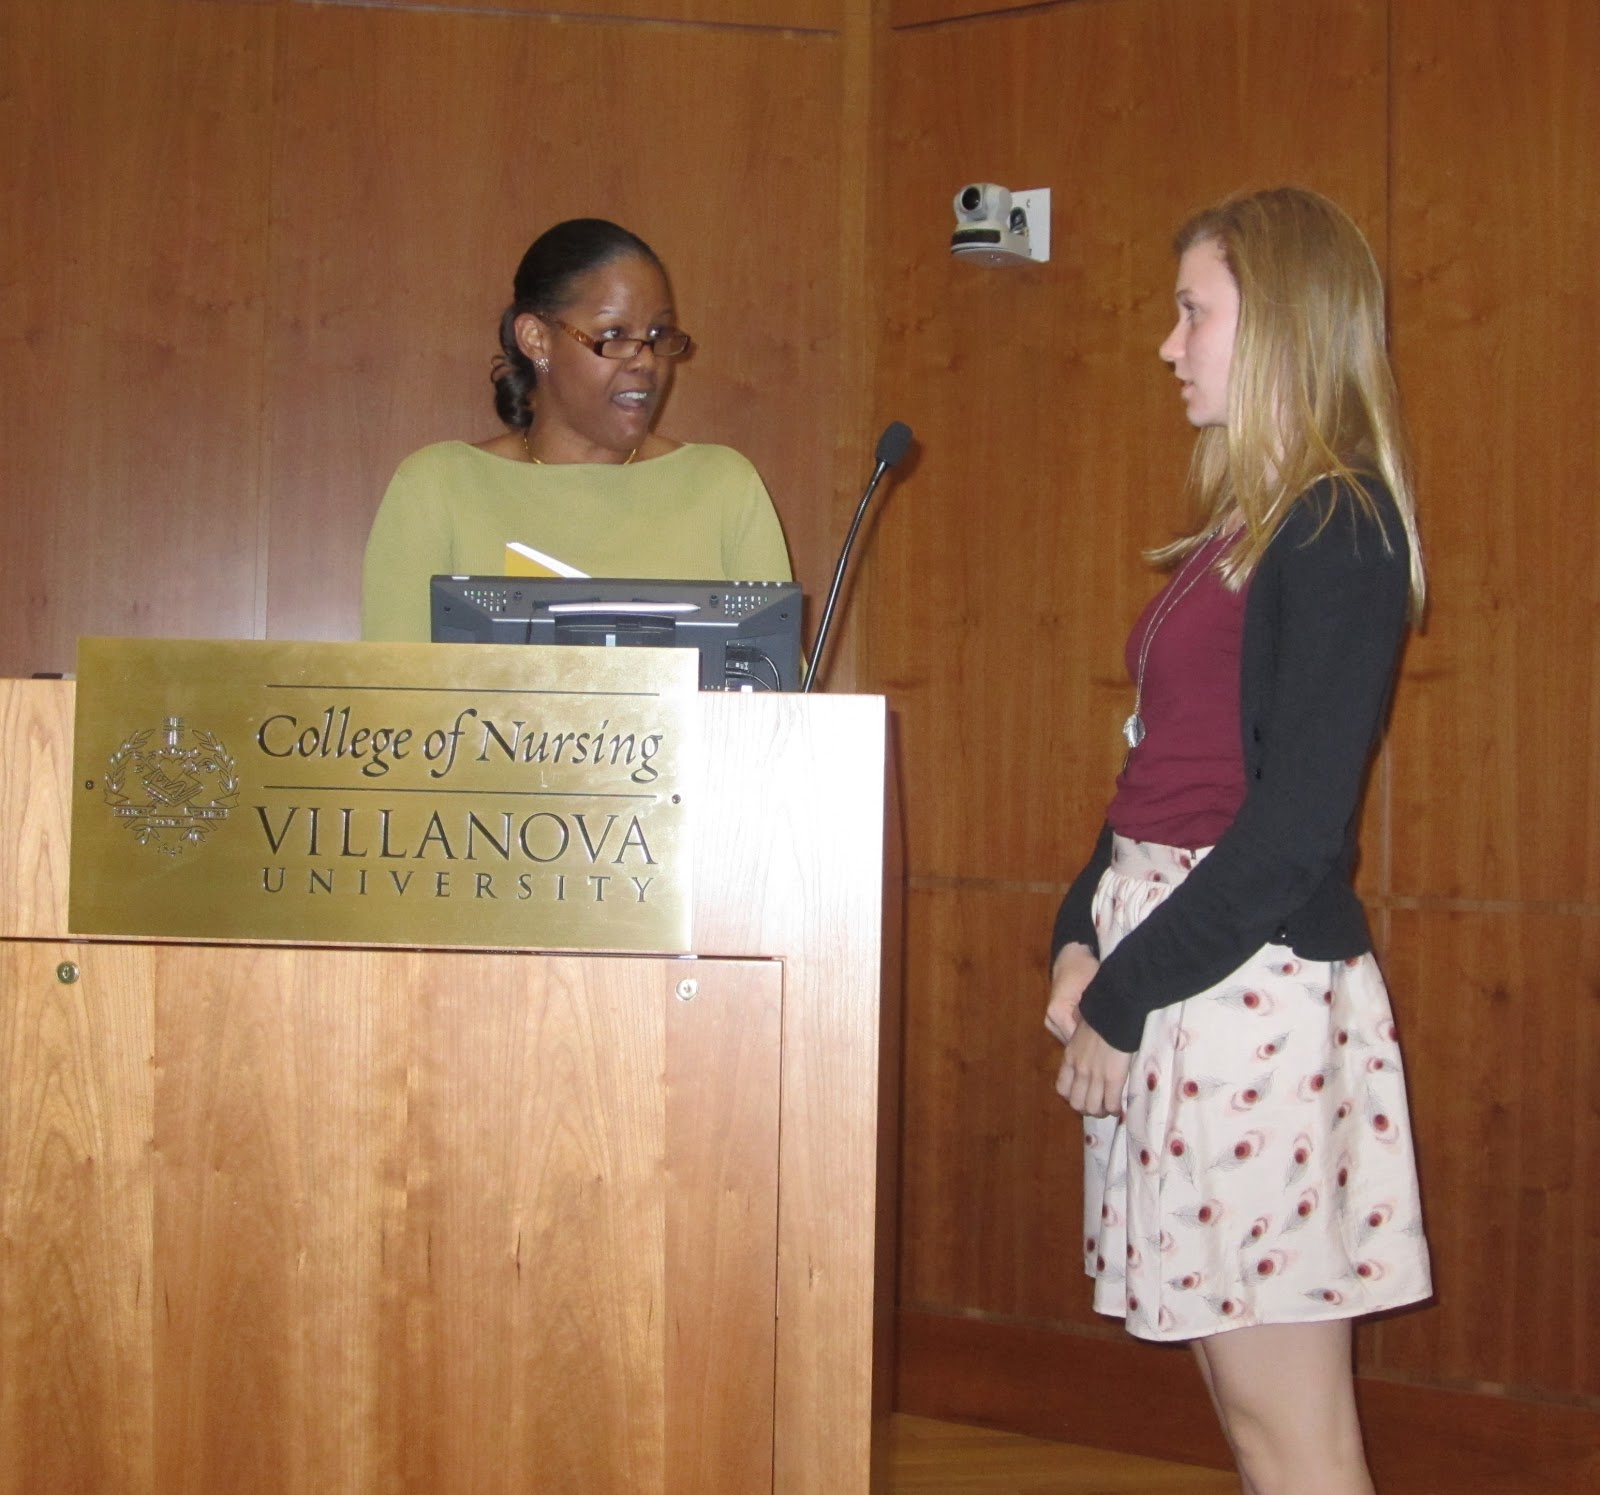 villanova english pictures from the awards ceremony crystal lucky and shannon welch winner of the jerome j fischer memorial award for the most distinguished undergraduate essay written in a villanova